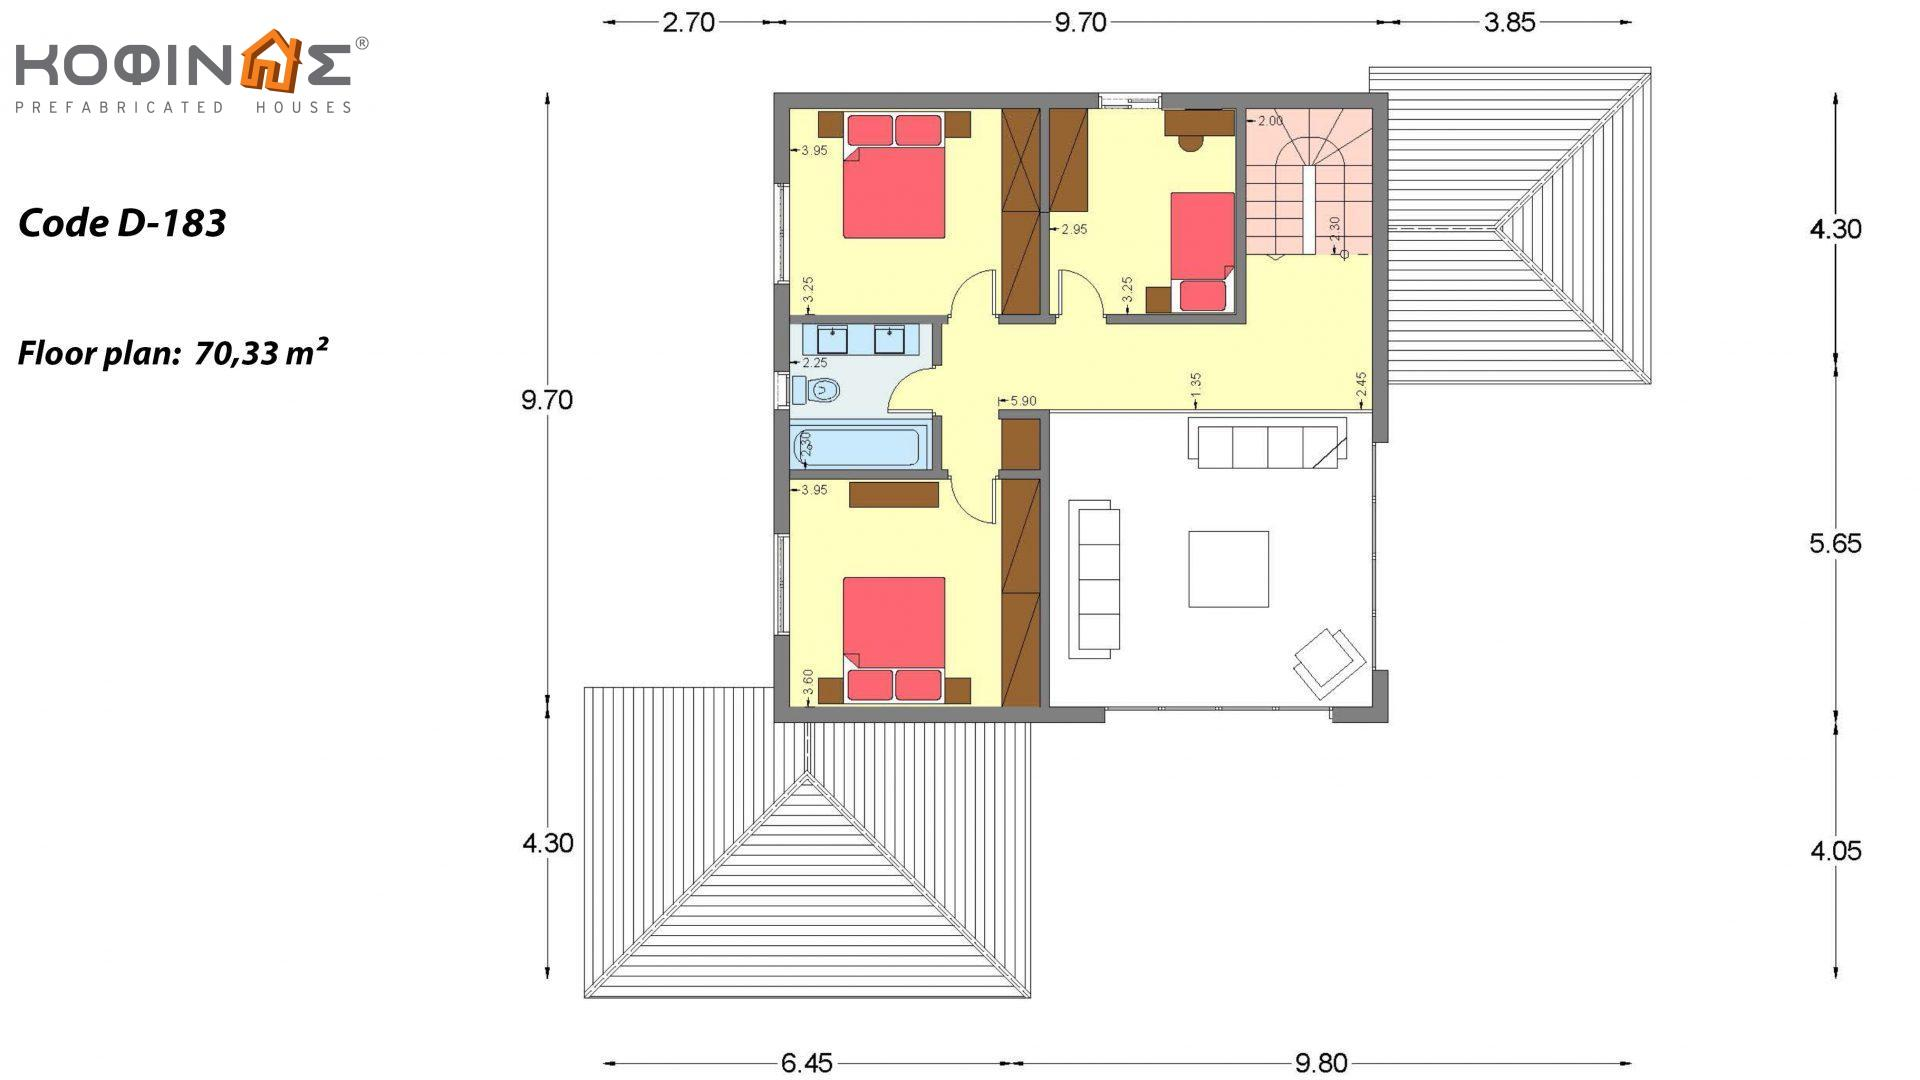 2-story house D 183, total area 183.34 m²., +garage 26.11 m²(= 209,45 m²),  covered areas 42.84 m², and balcony (case B) 16.56 m²